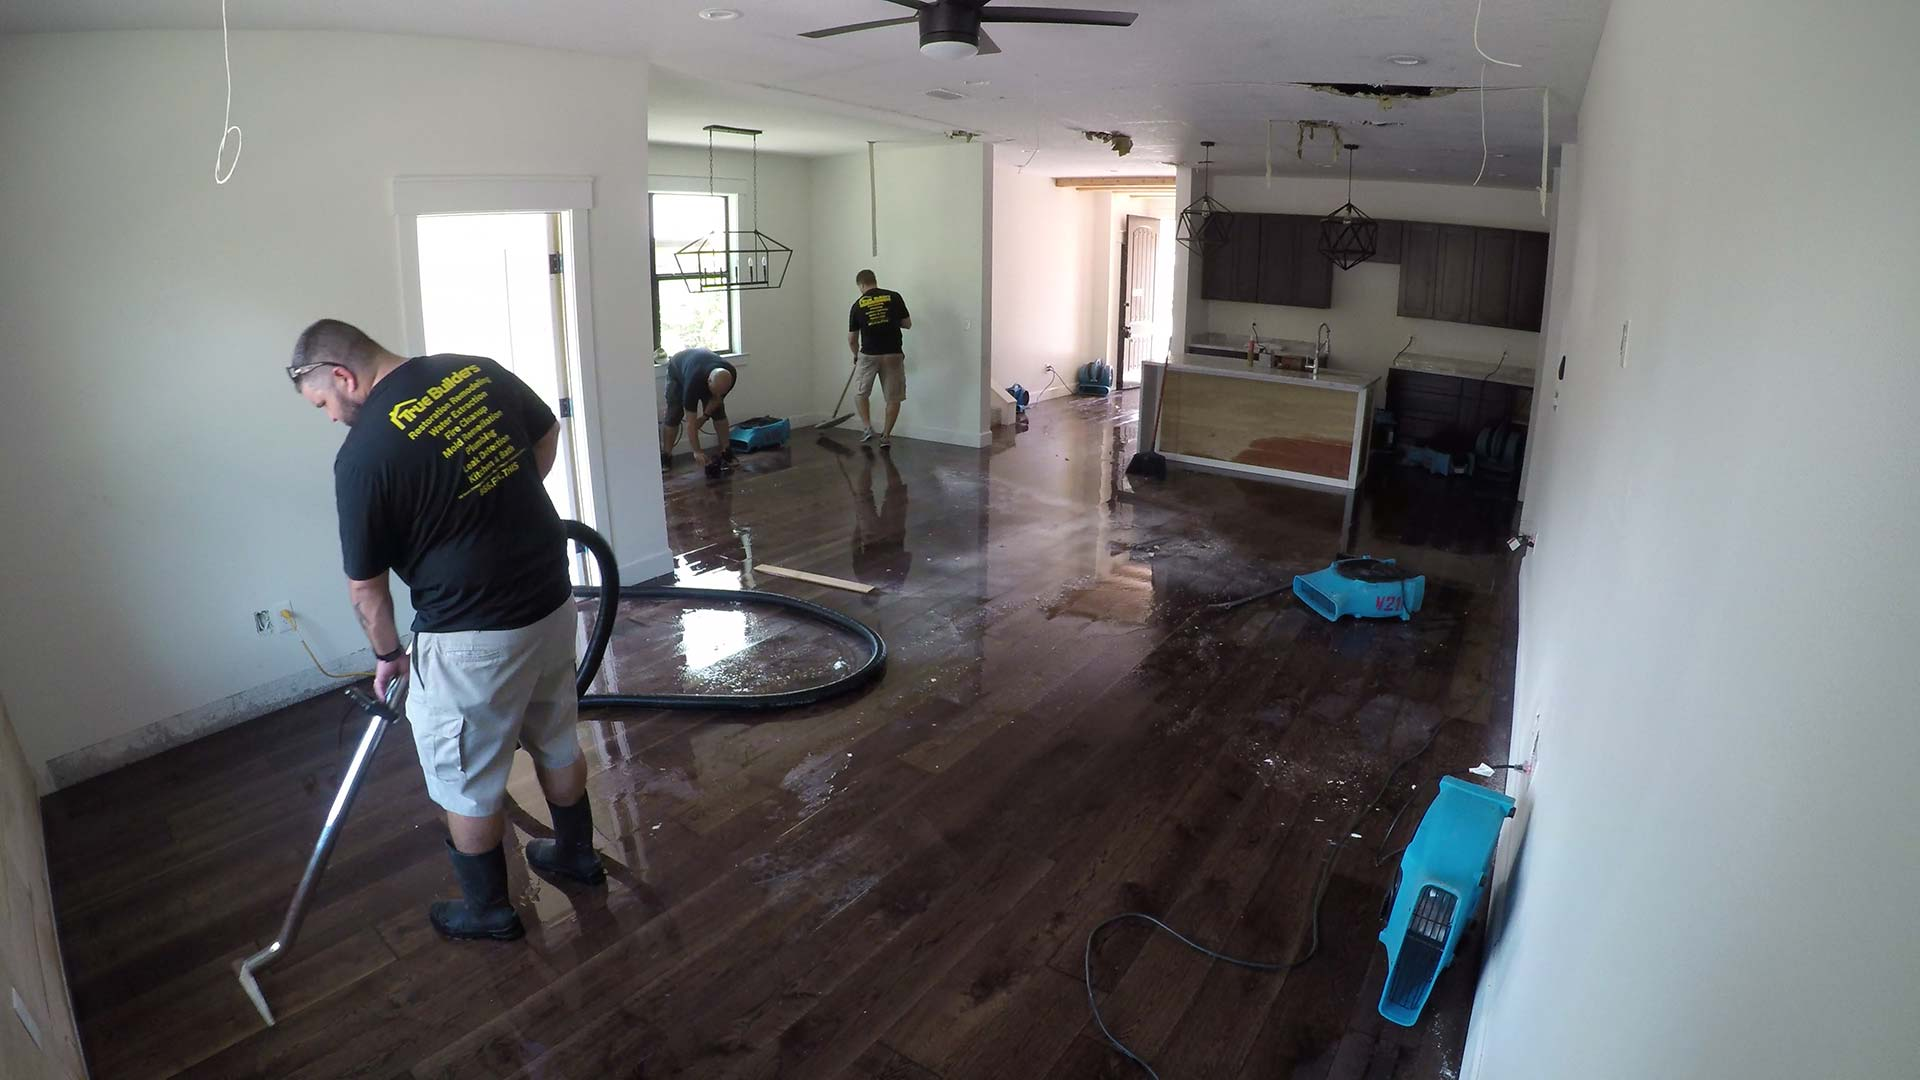 Drying and extracting water from a home in Lakeland, FL.